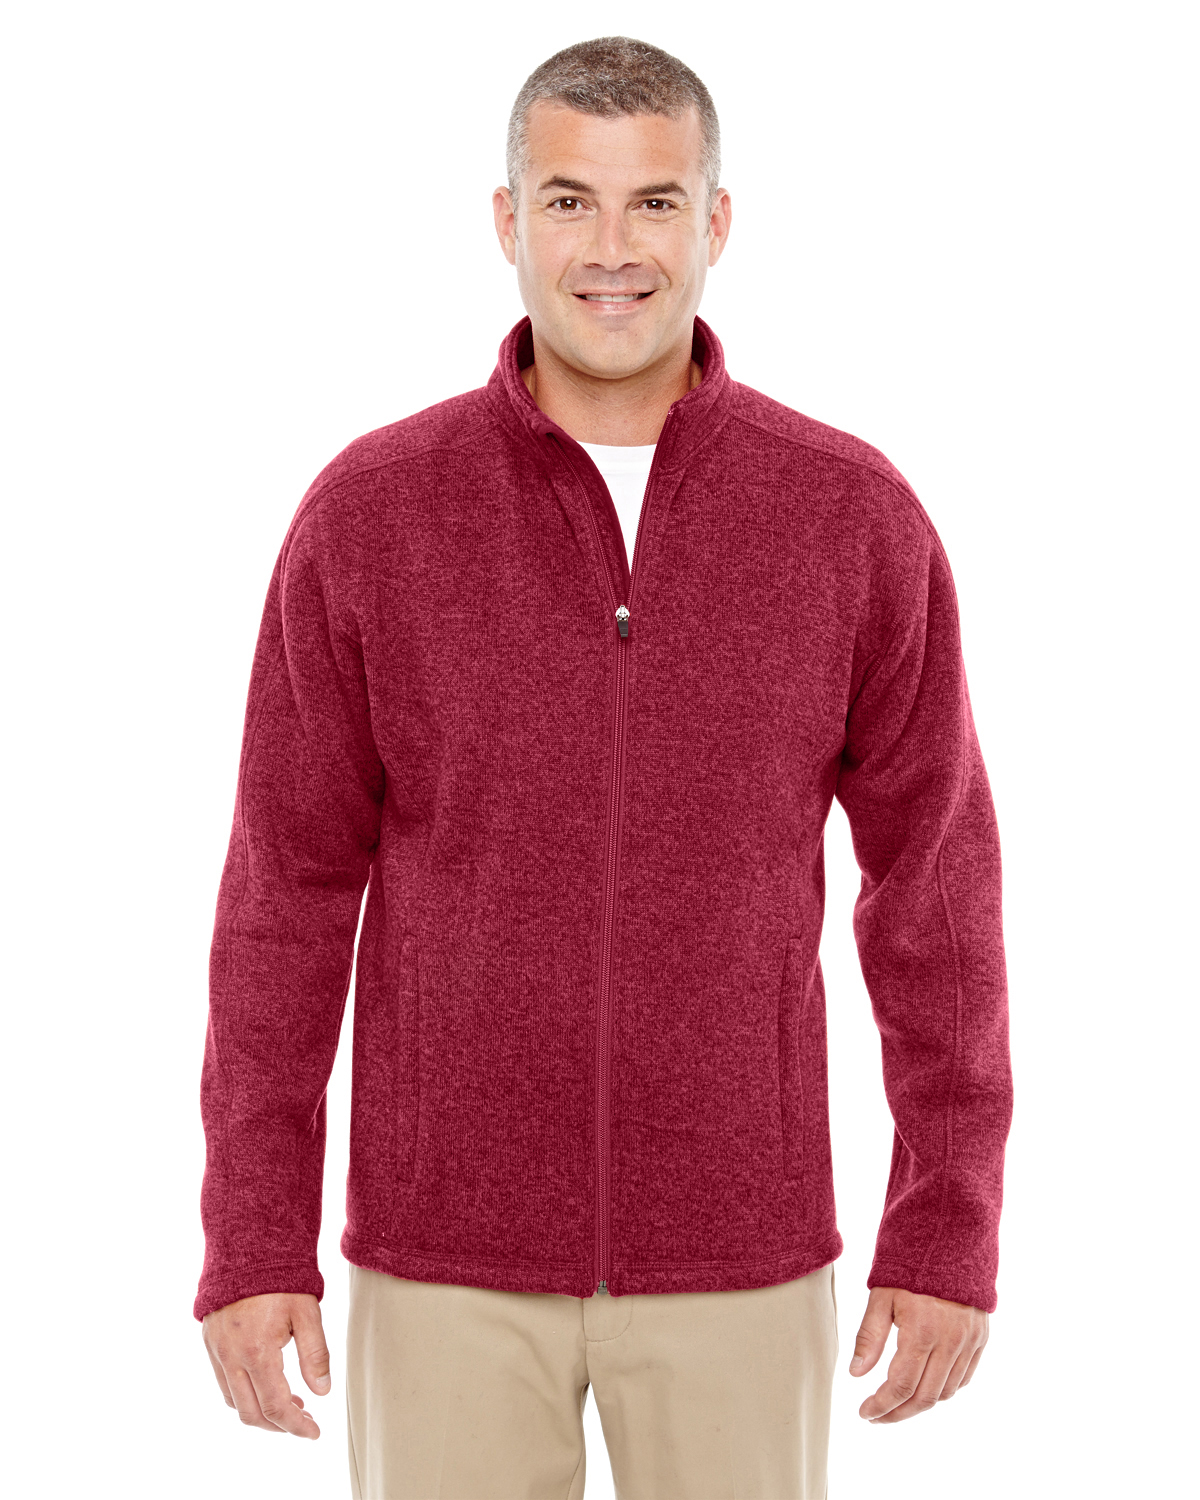 Devon & Jones - DG793 Men's Bristol Full-Zip Sweater Fleece Jacket, Pensacola, Embroidery, Screen Printing, Logo Masters International